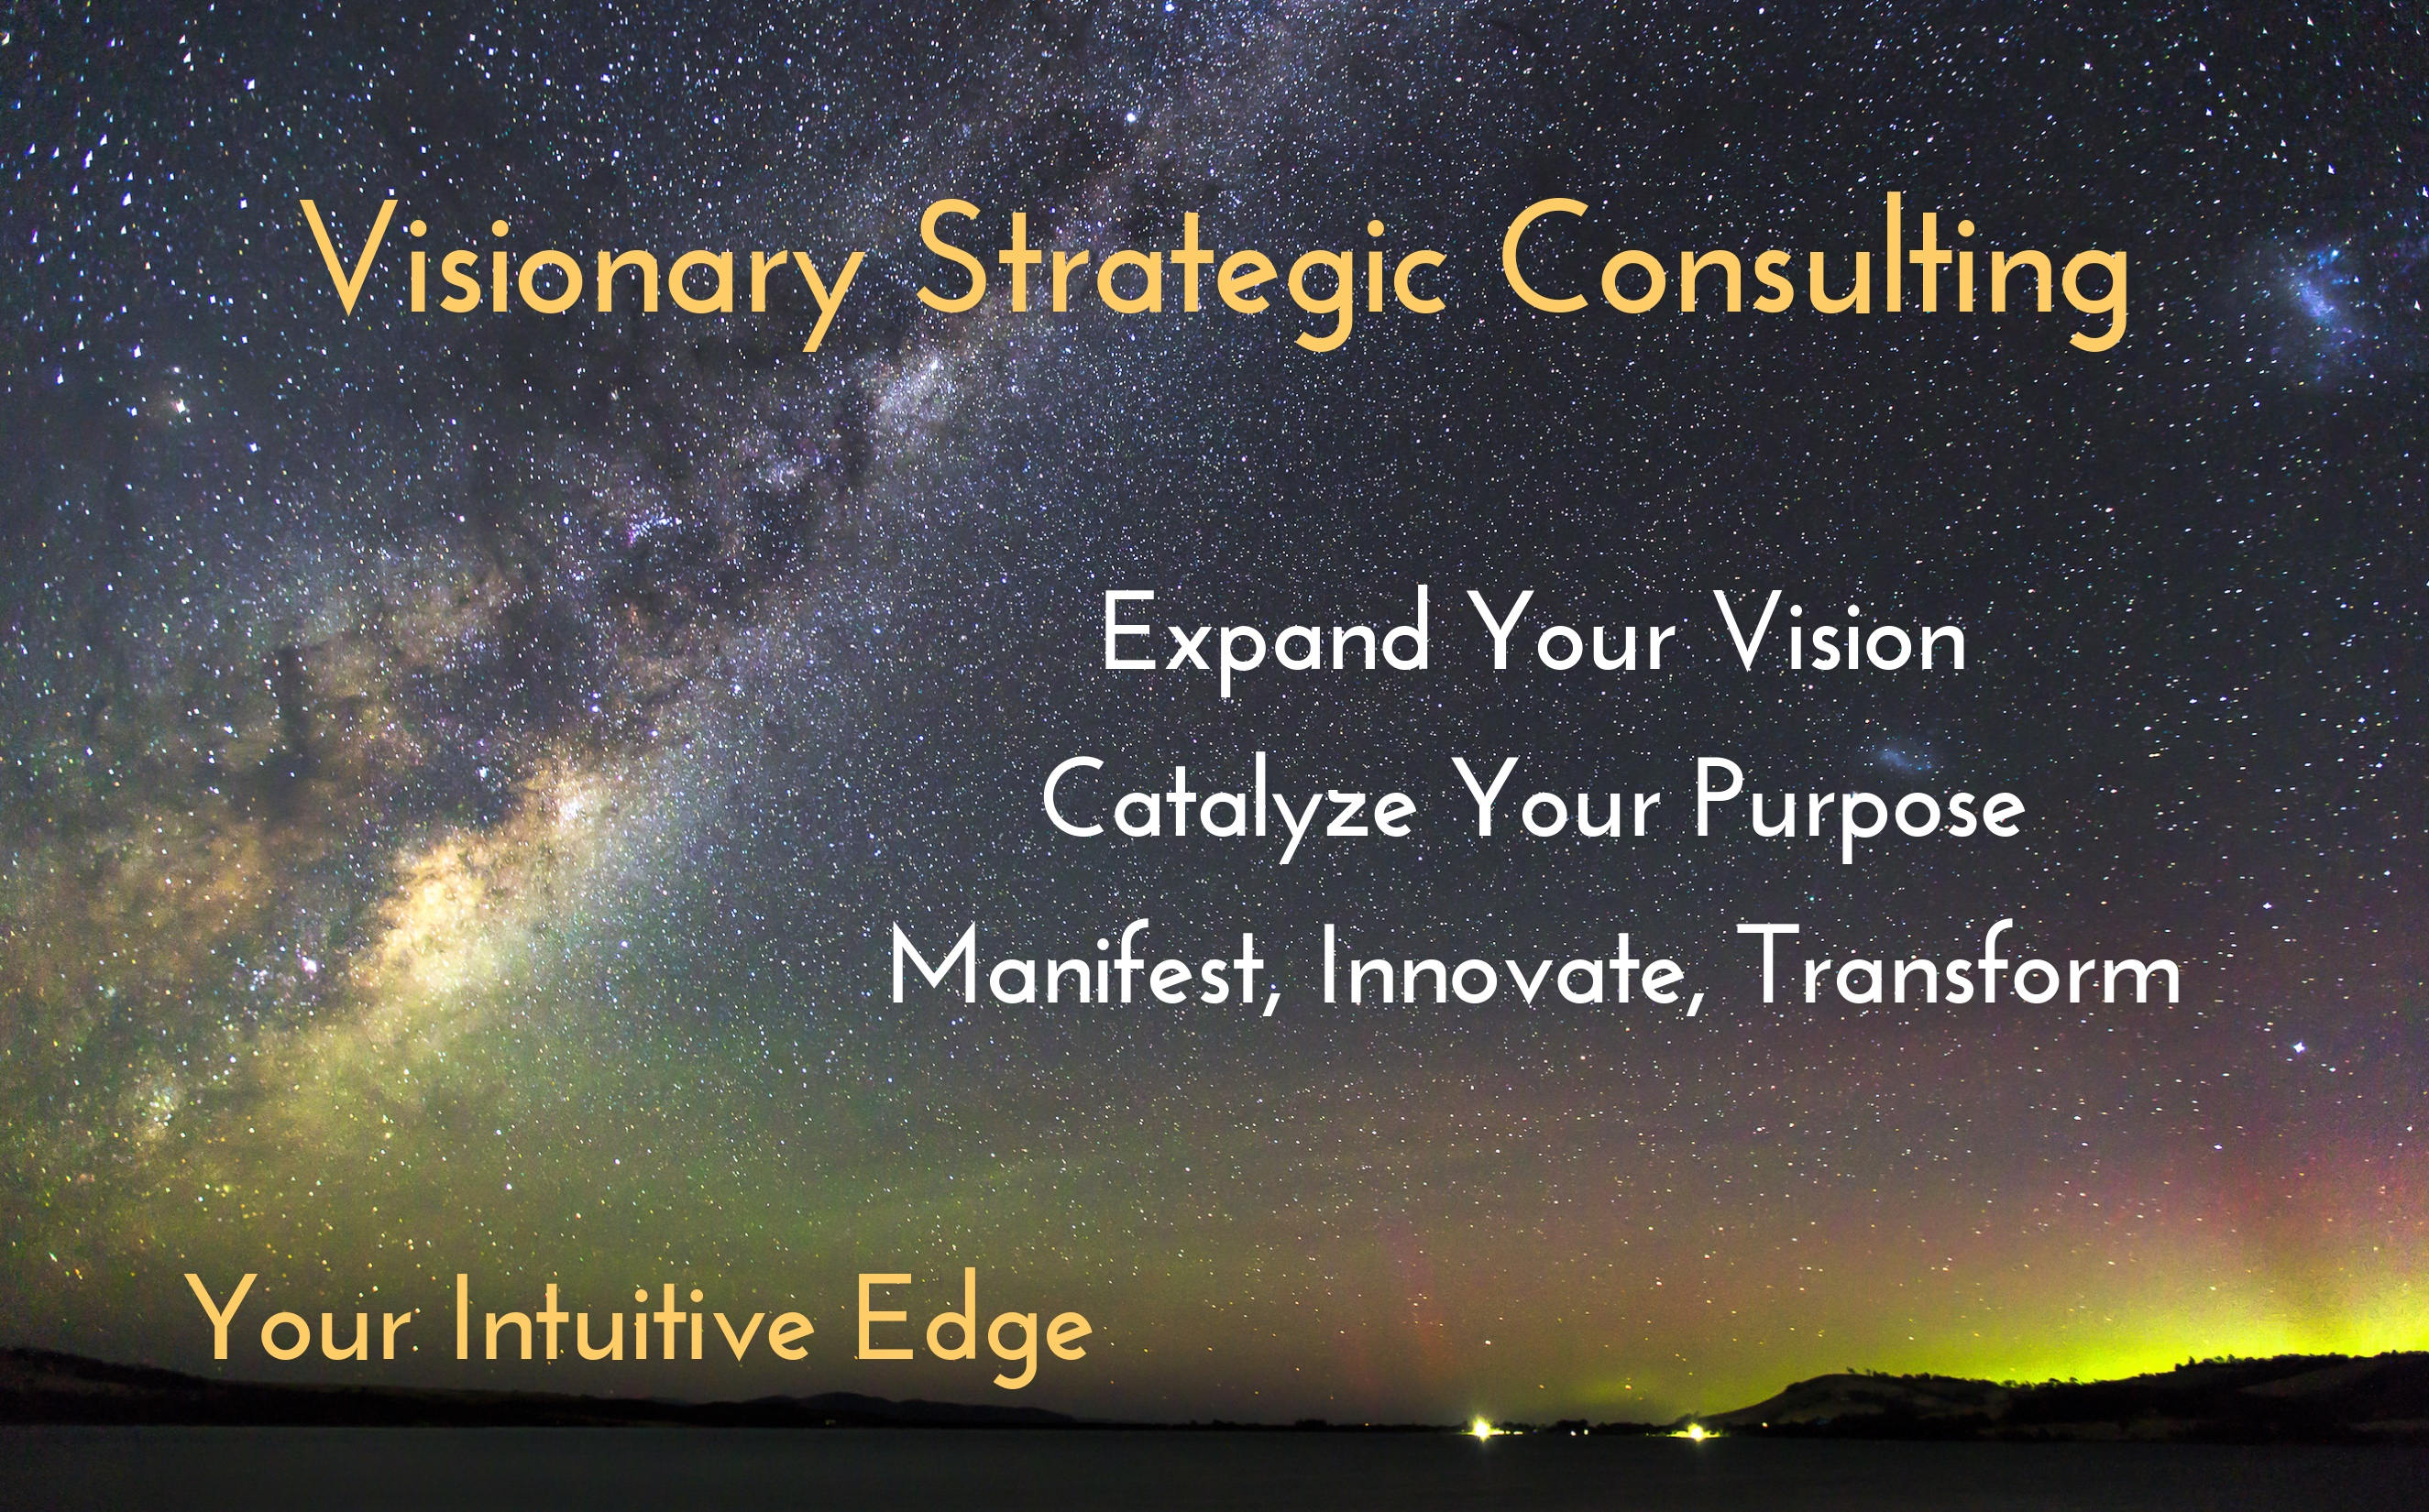 Visionary Strategic Consulting_Image